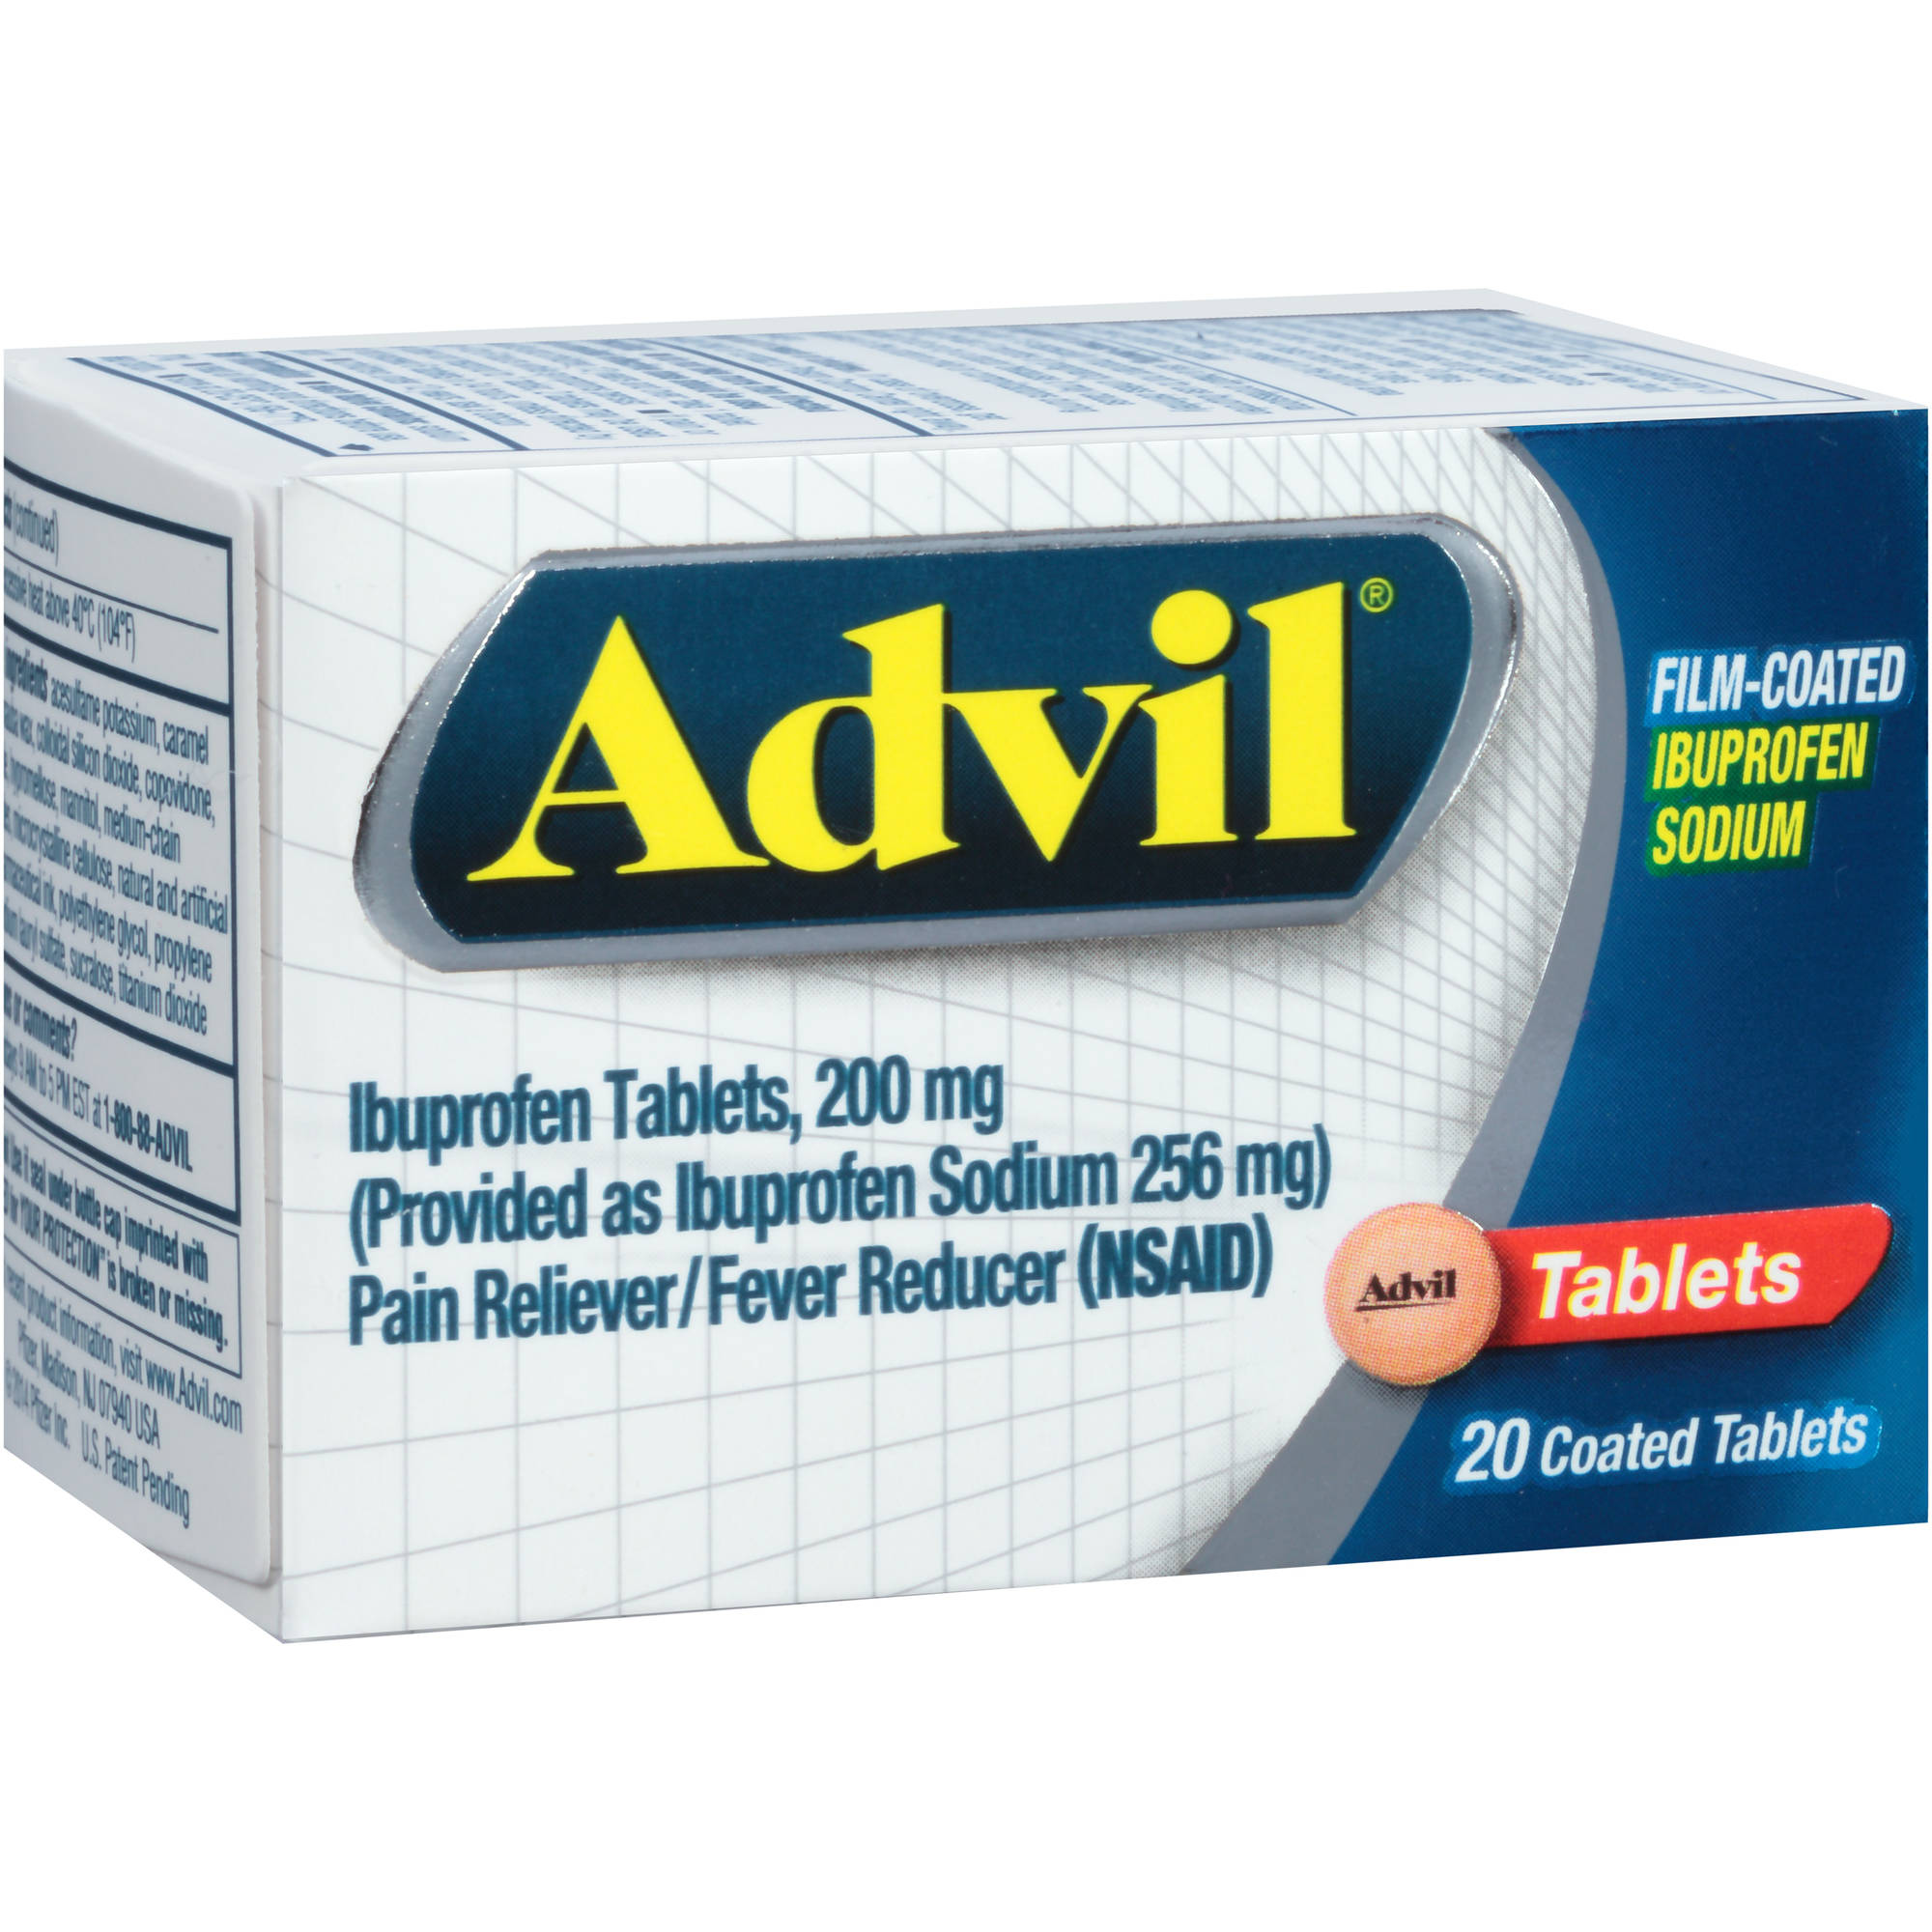 Advil Film-Coated Pain Reliever / Fever Reducer (Ibuprofen), 200 mg 20 count